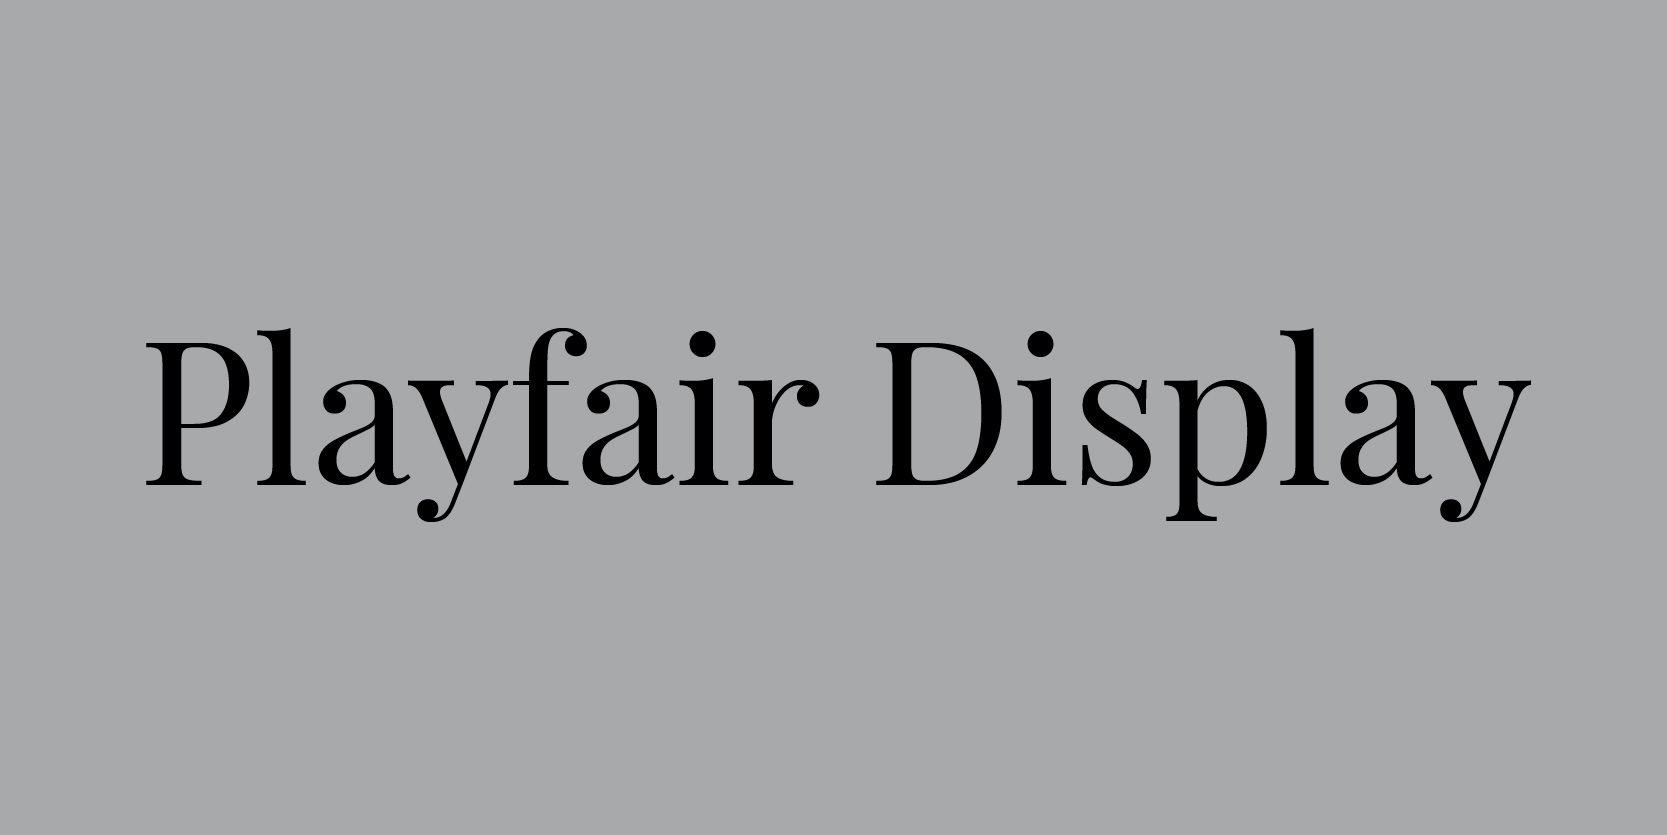 playfair-01.jpg